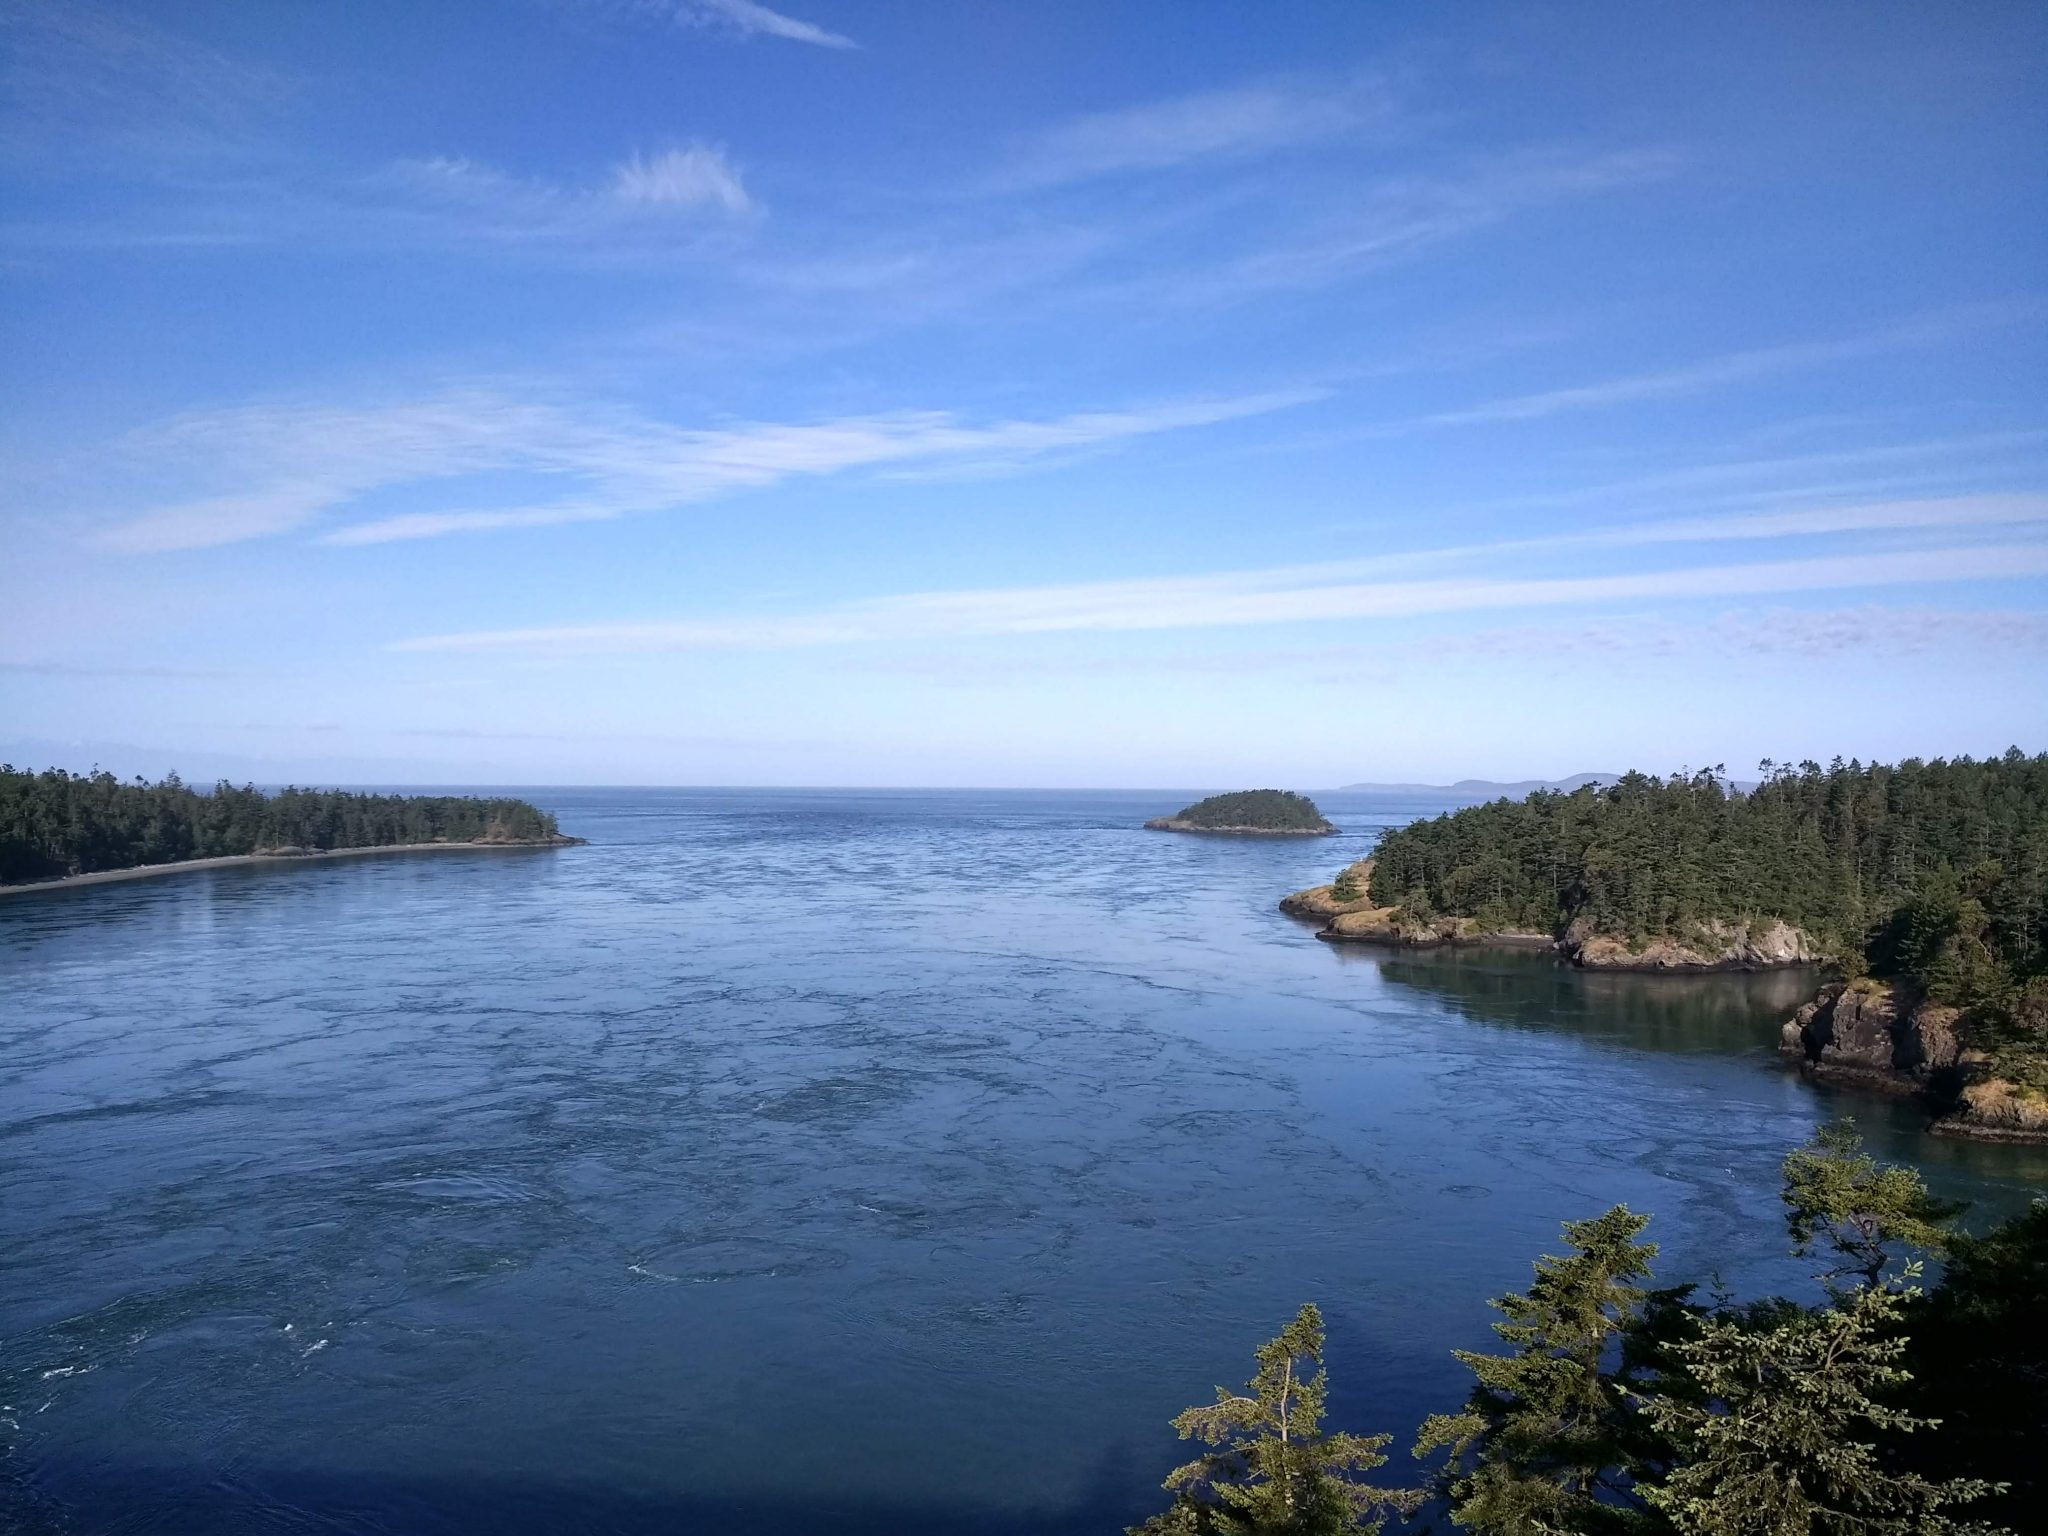 Several rocky island shores with forested hillsides are seen from above on a sunny day. The water has a current through Deception Pass and is bright blue. The sky is also blue with a few wispy clouds